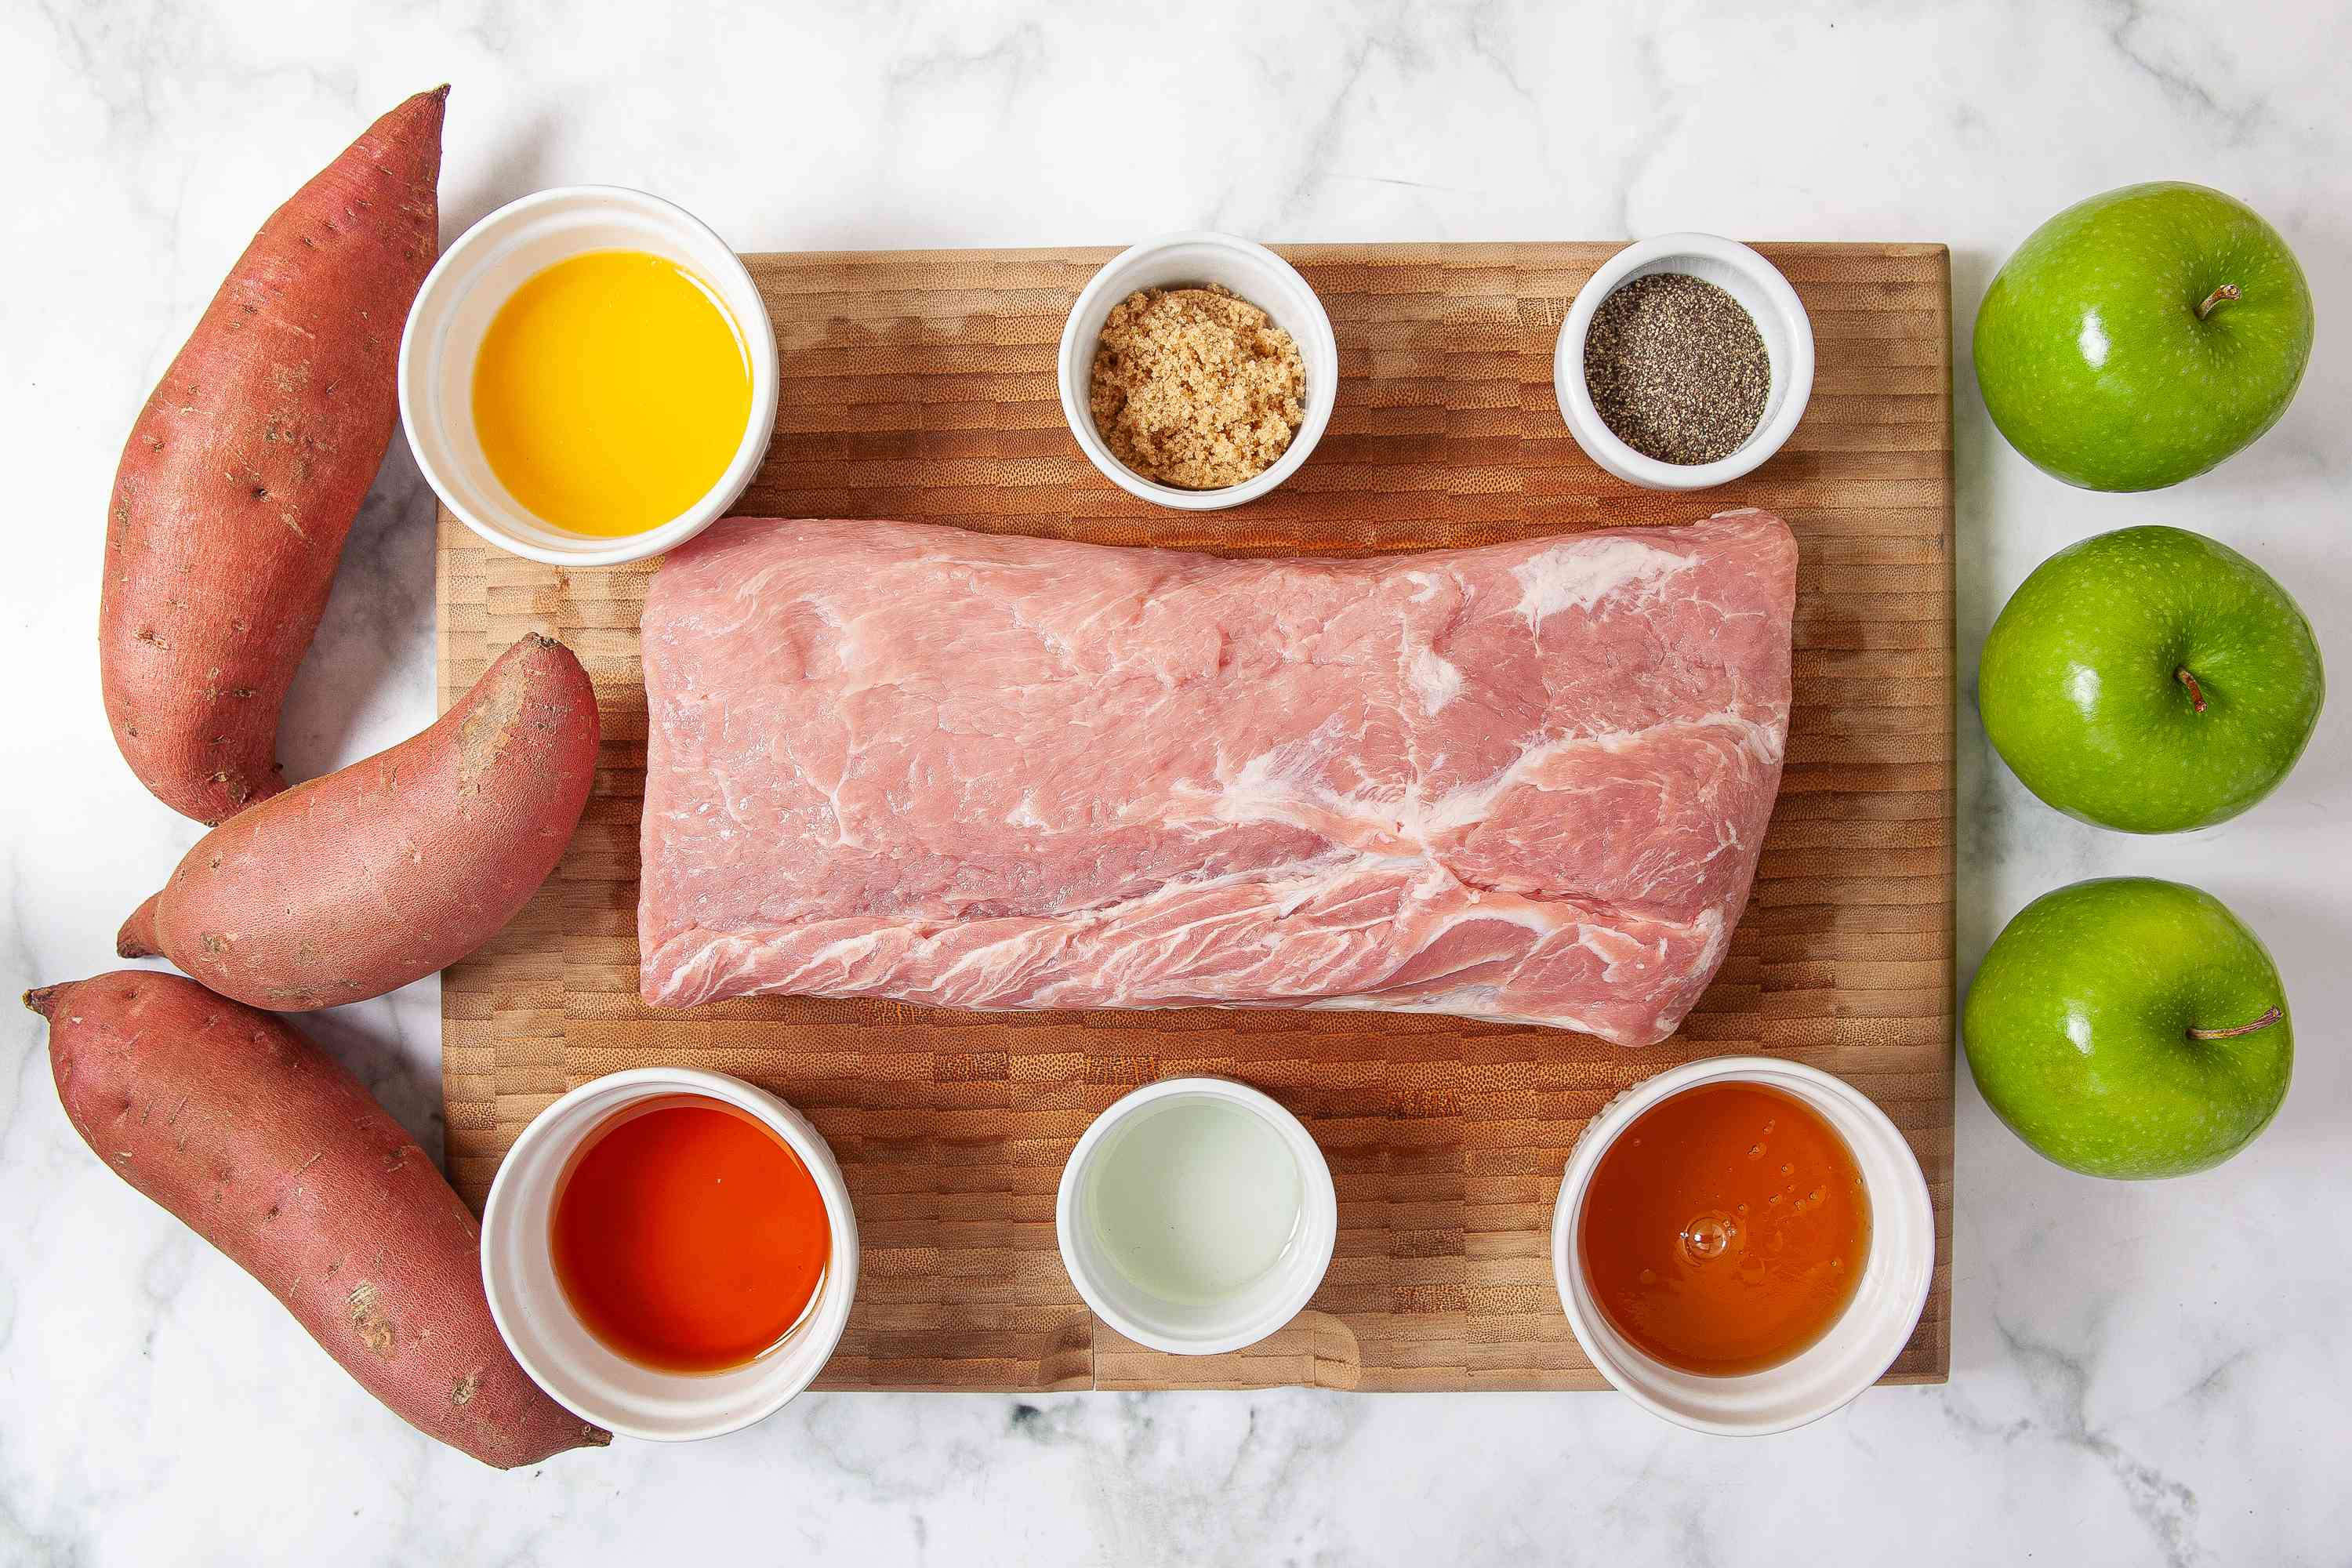 Roast Pork Loin With Sweet Potatoes and Apples ingredients